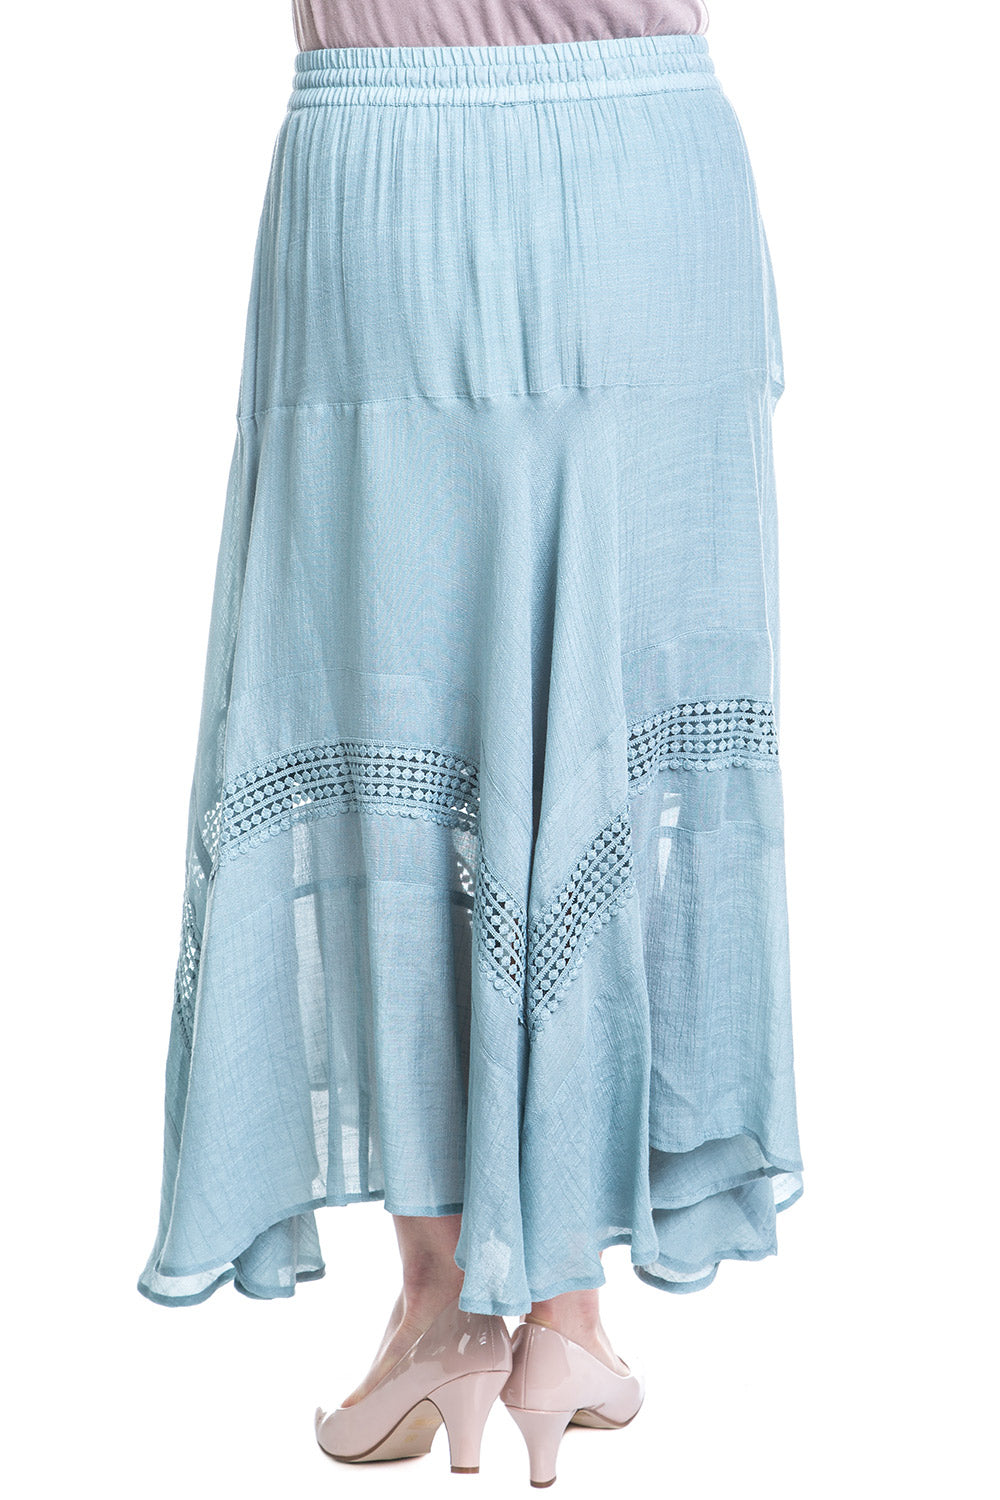 Type 2 Cha Cha Cha Skirt In Misty Blue